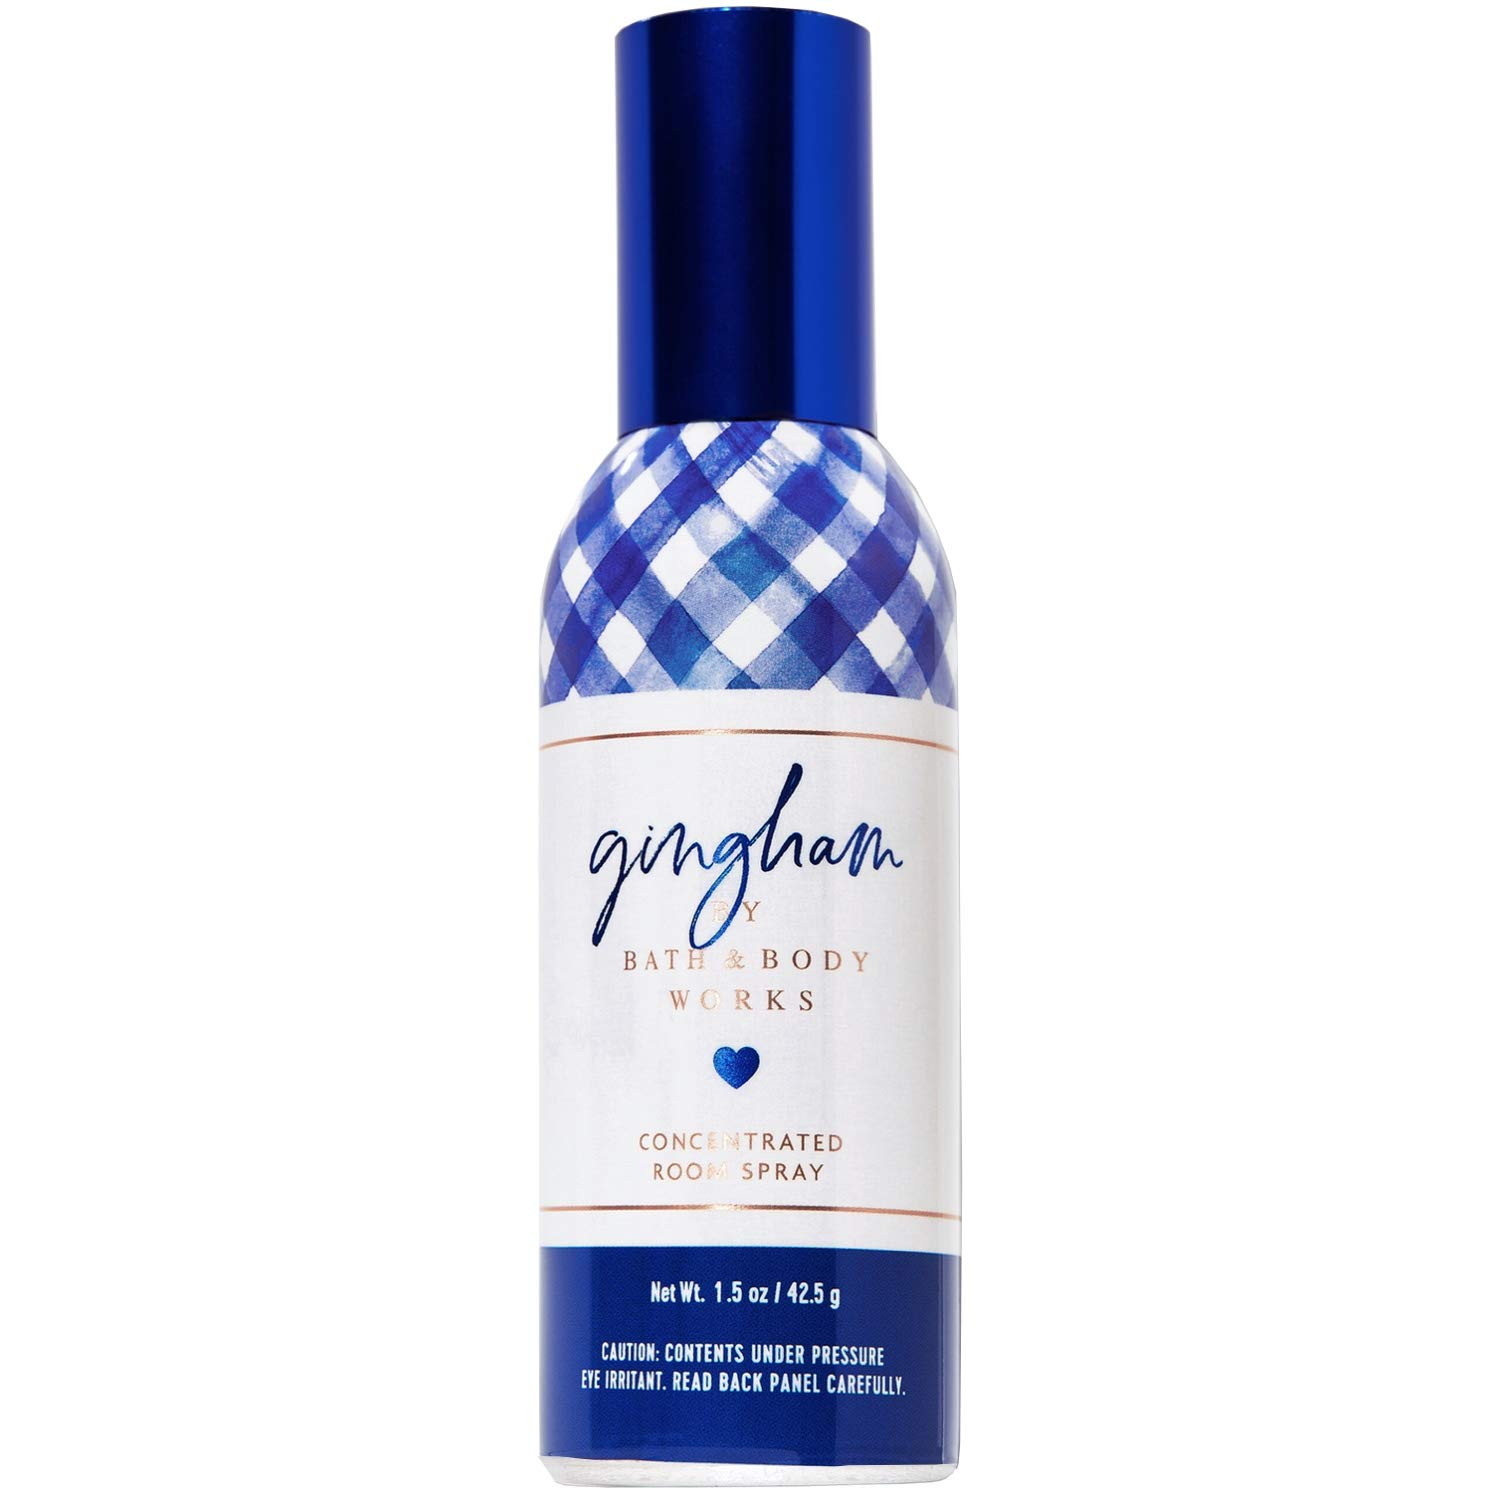 Bath and Body Works Gingham Concentrated Room Spray 1.5 Ounce (2019 Limited Edition)